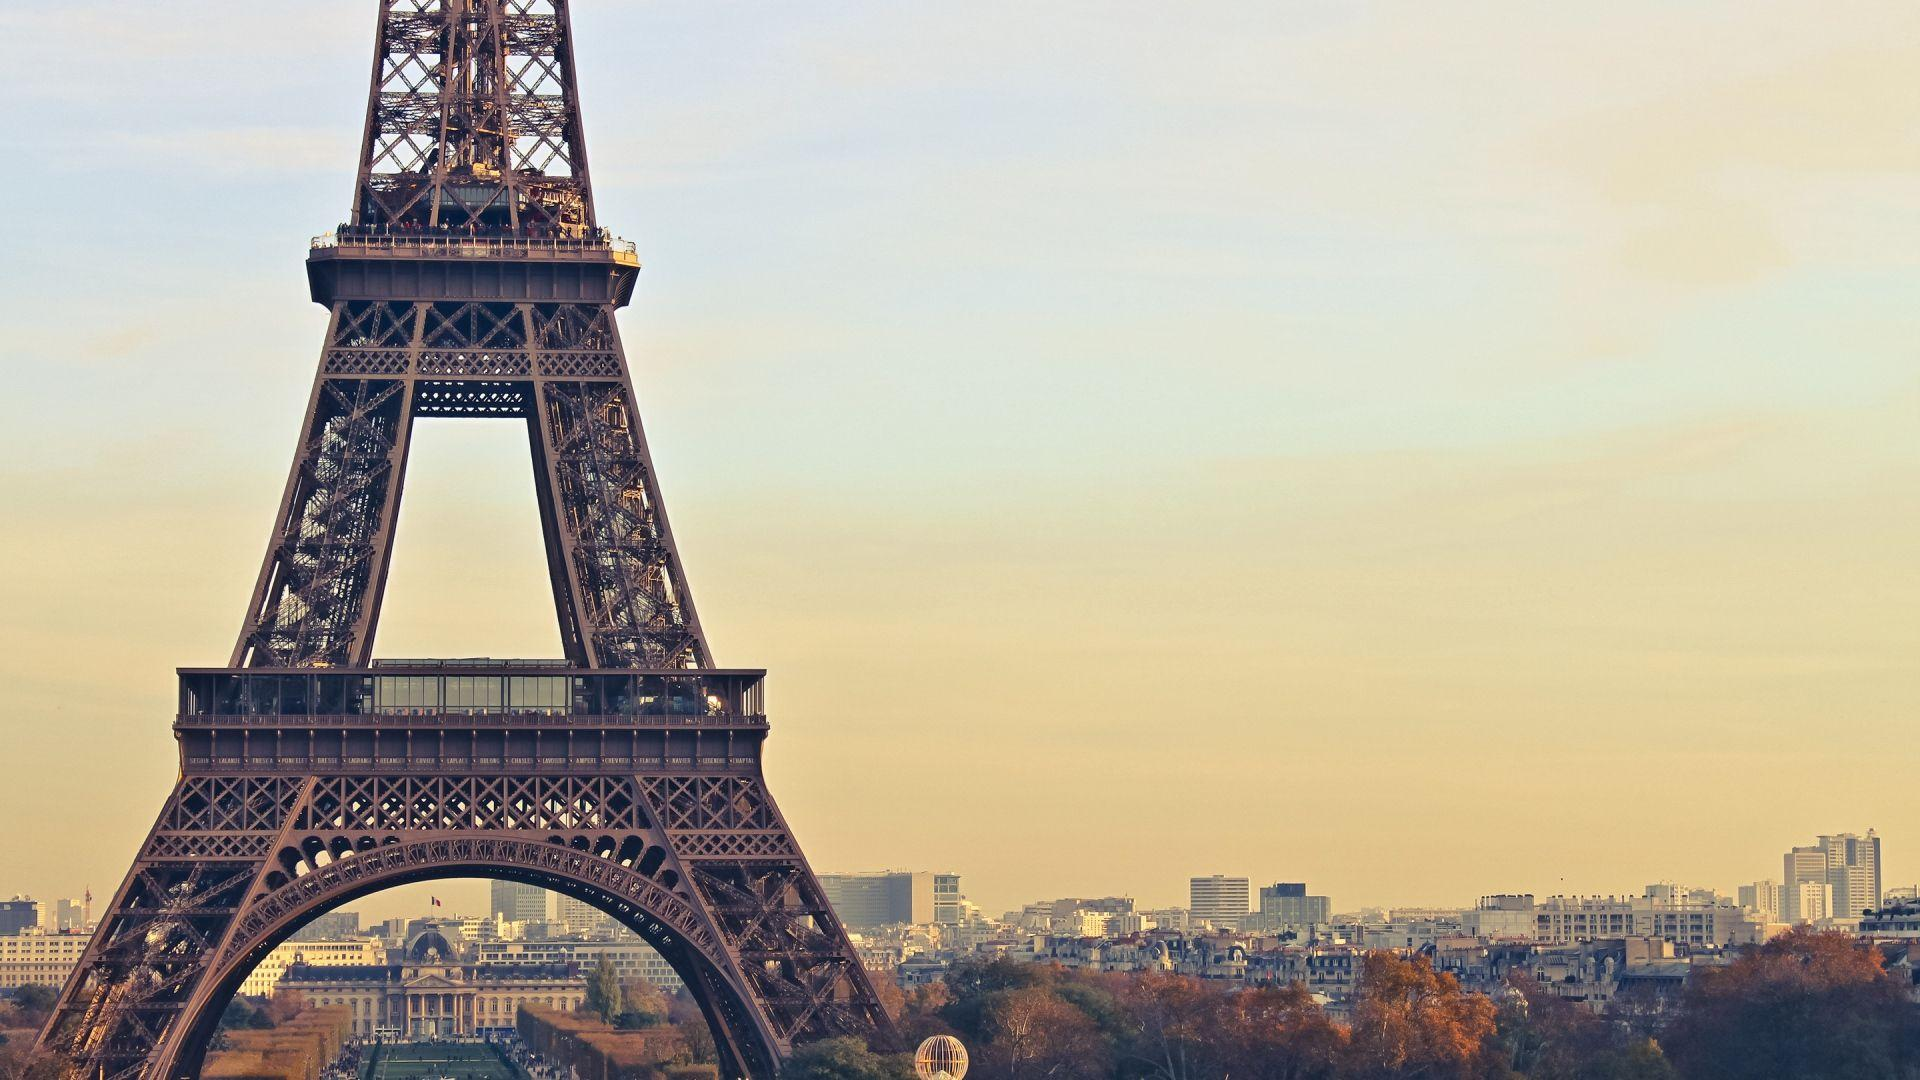 Eiffel Tower Paris France Wallpapers